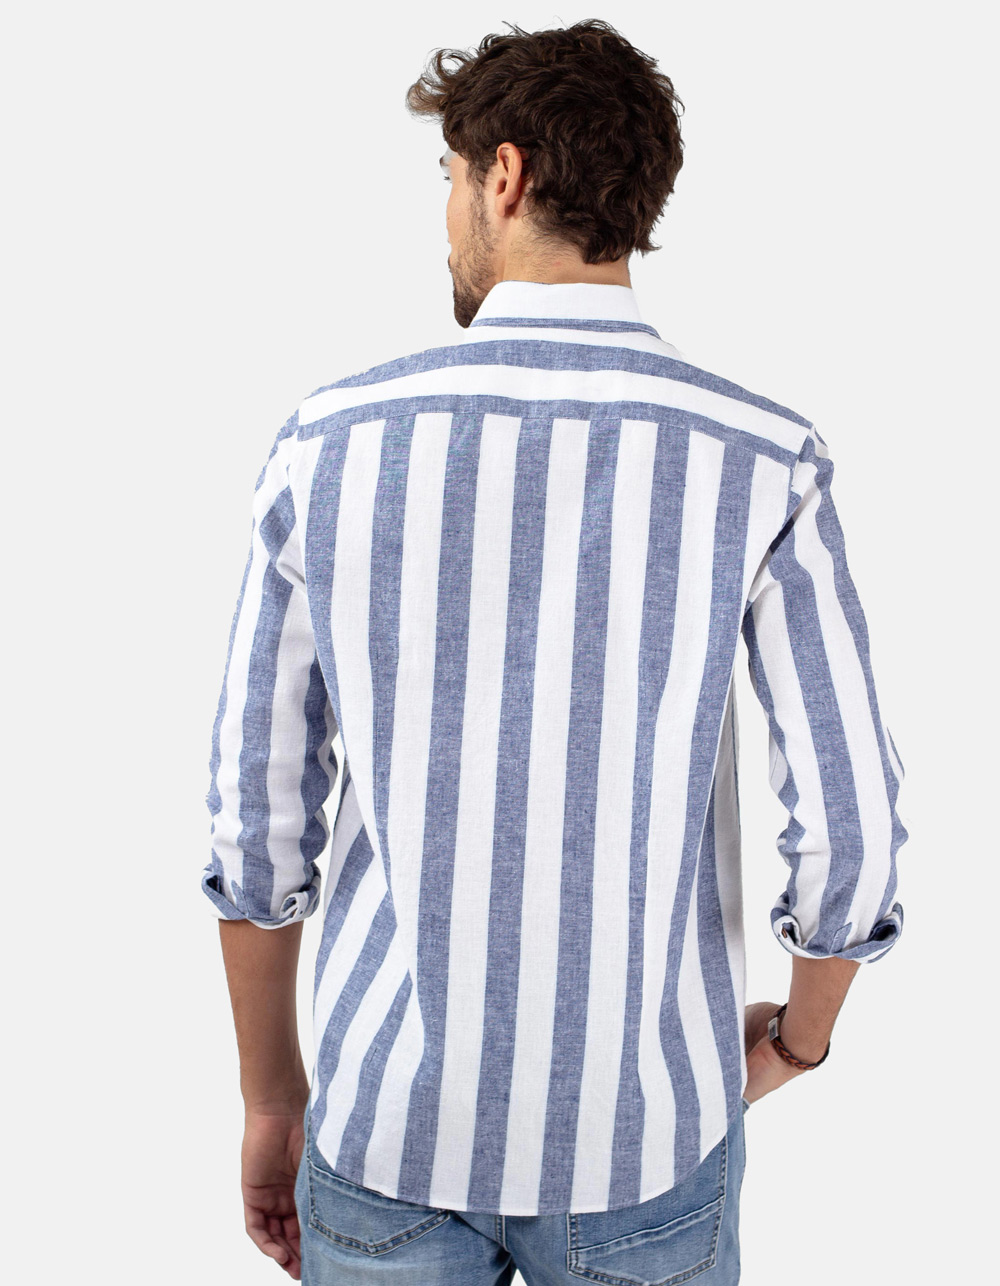 Camisa rayas azul blanca - Backside